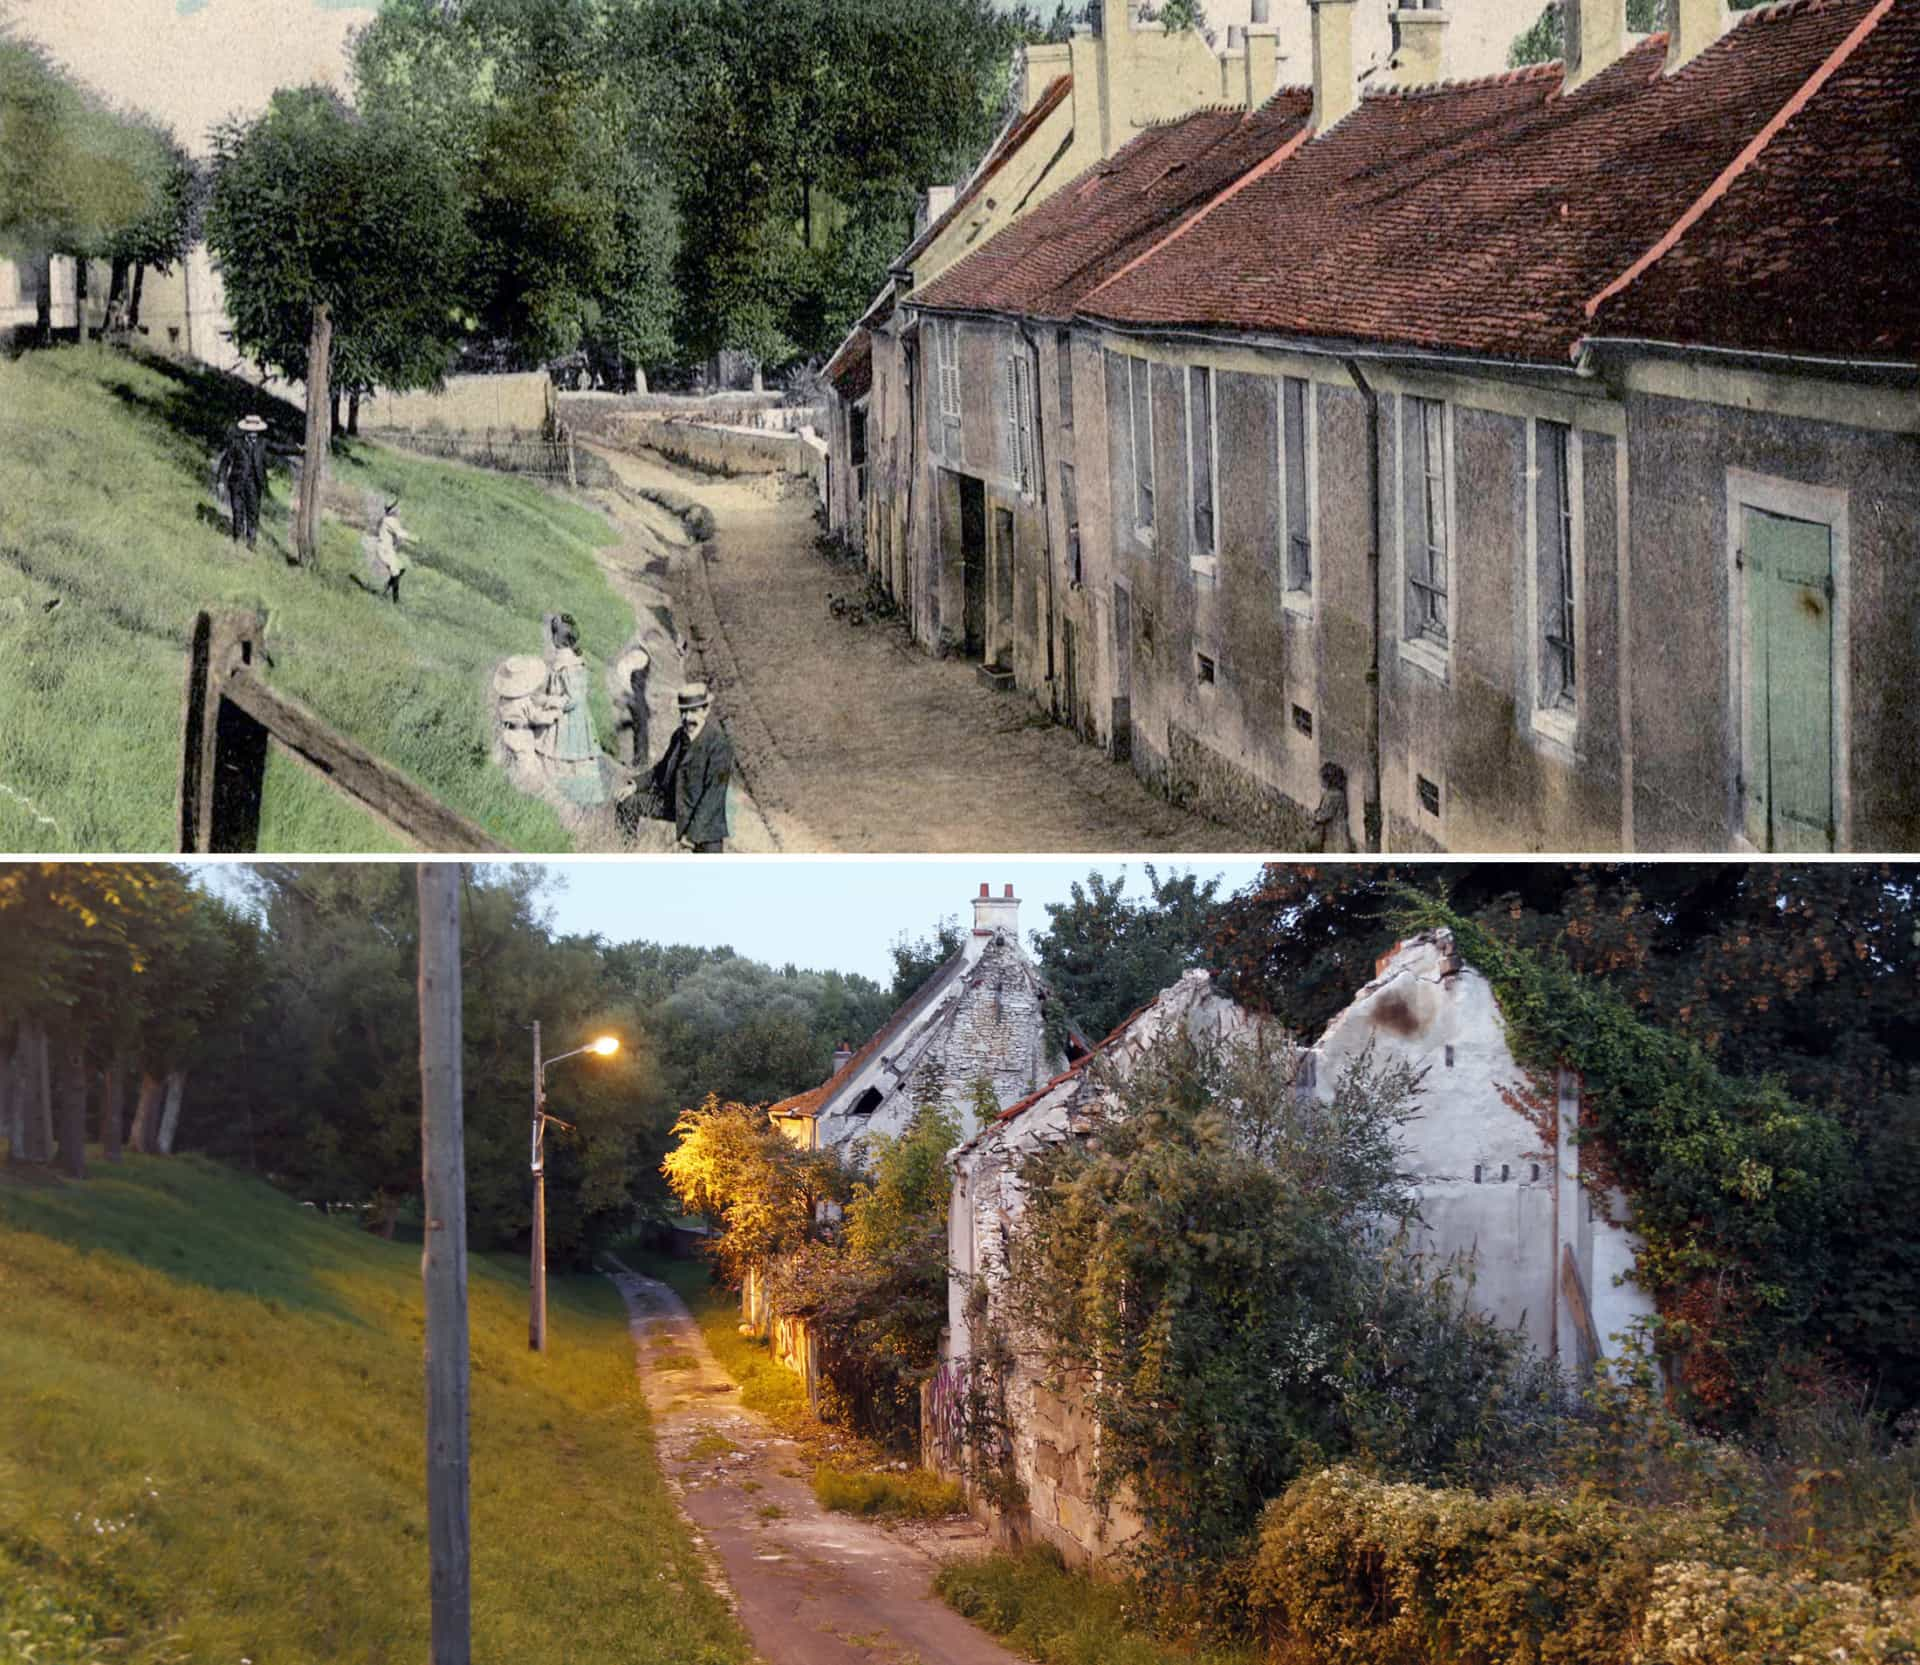 This derelict French village is anything but silent